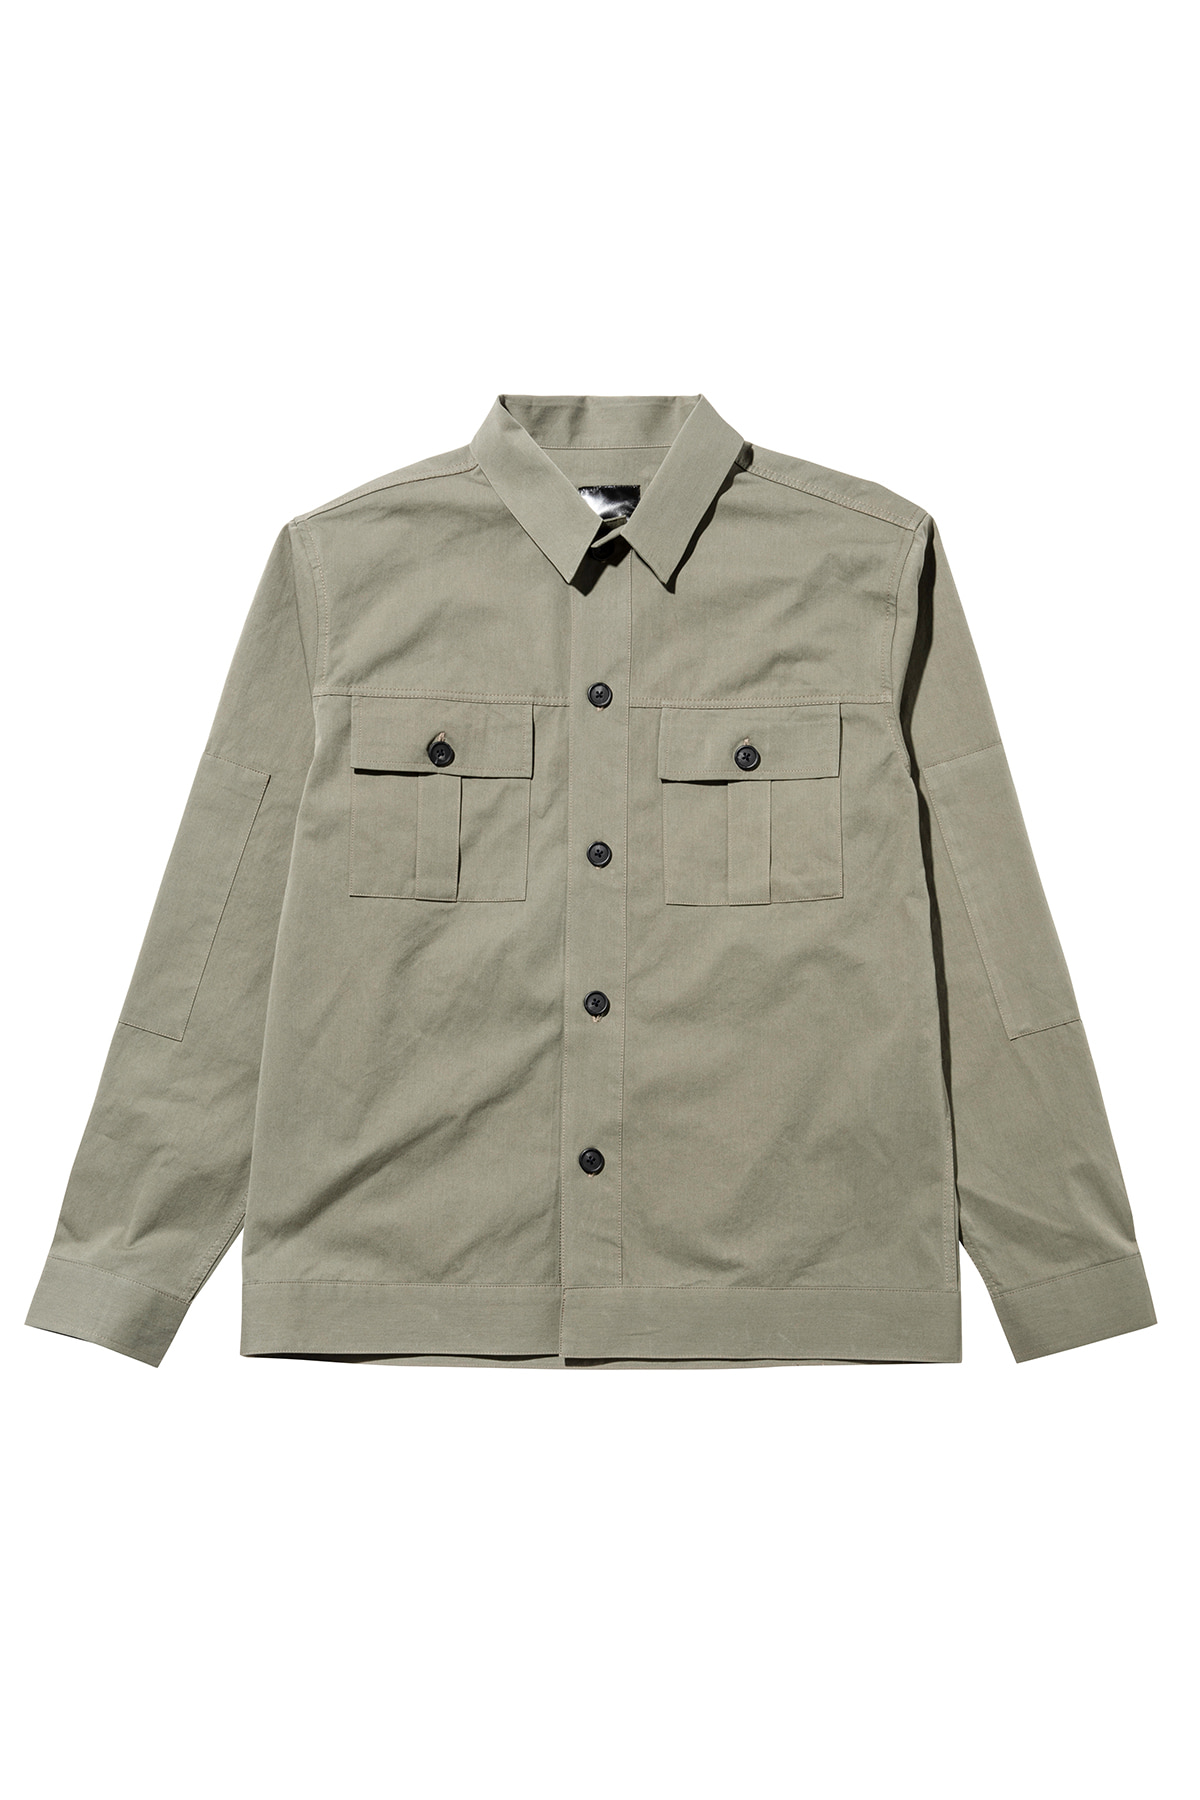 페이탈리즘 Fatigue pocket shirt jacket (kakhi) #jp37